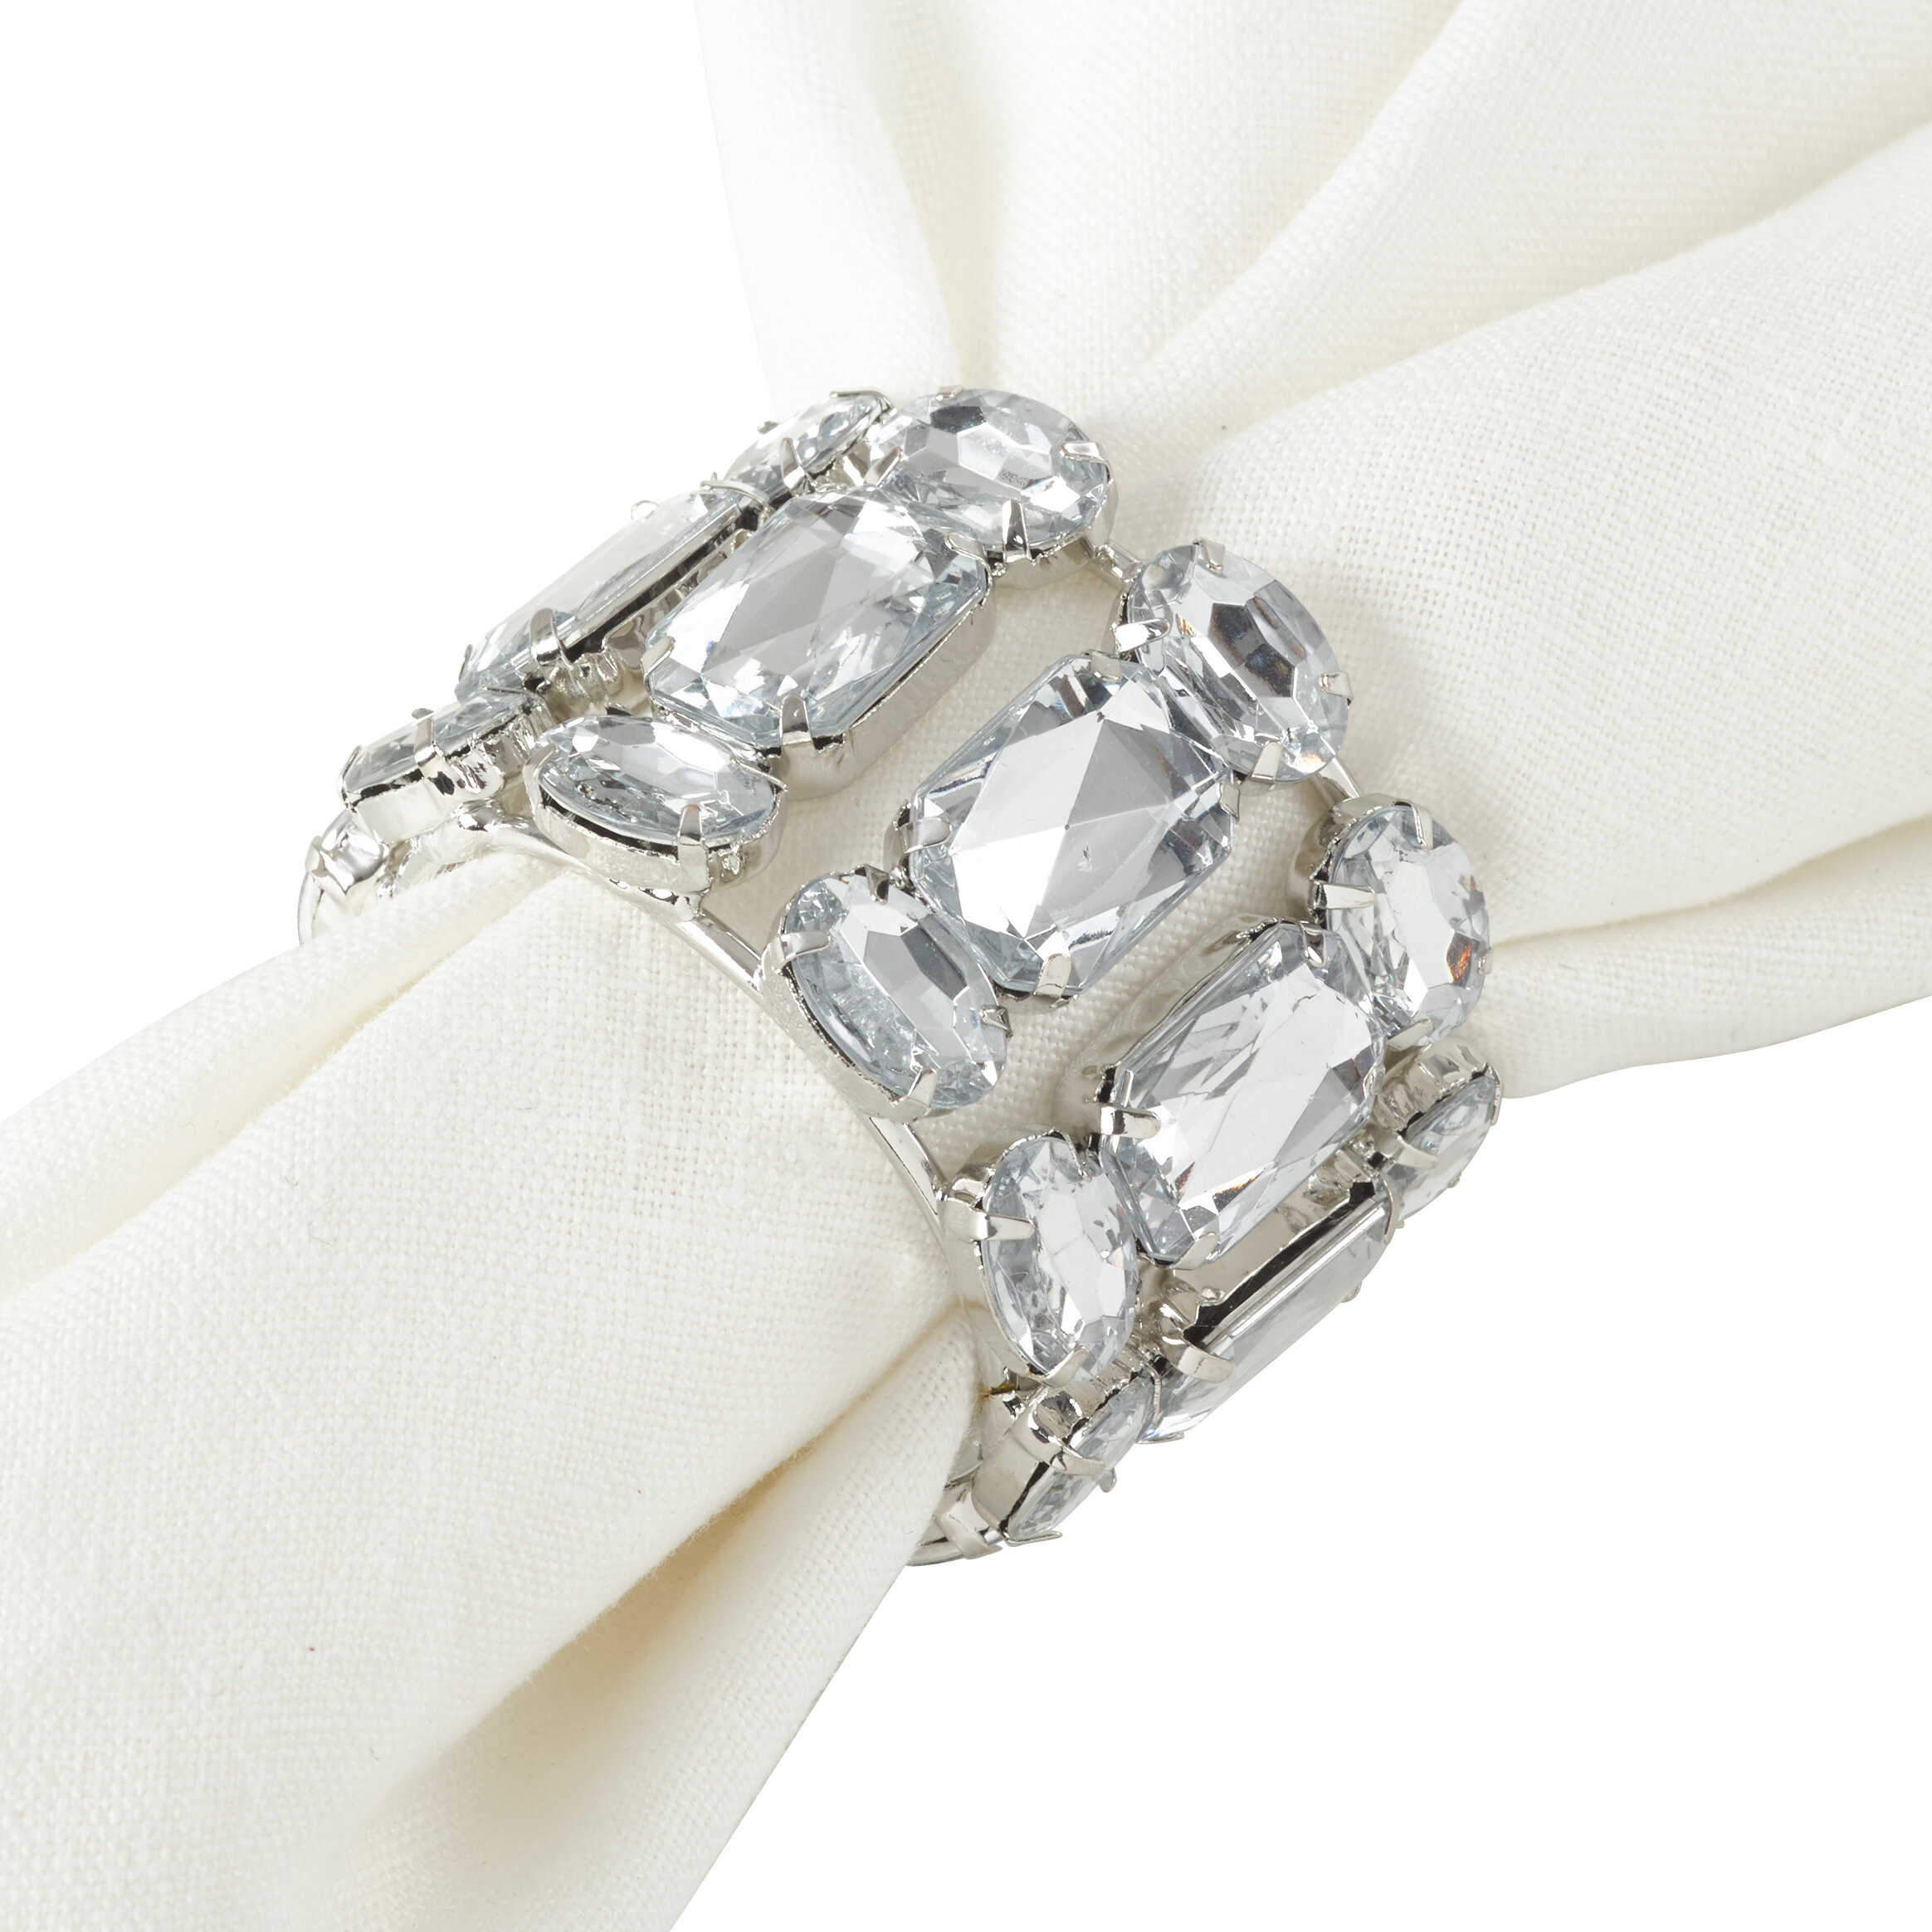 rings buy s of engagement to garrard features valentines glamorous traveler day house for valentine five elite